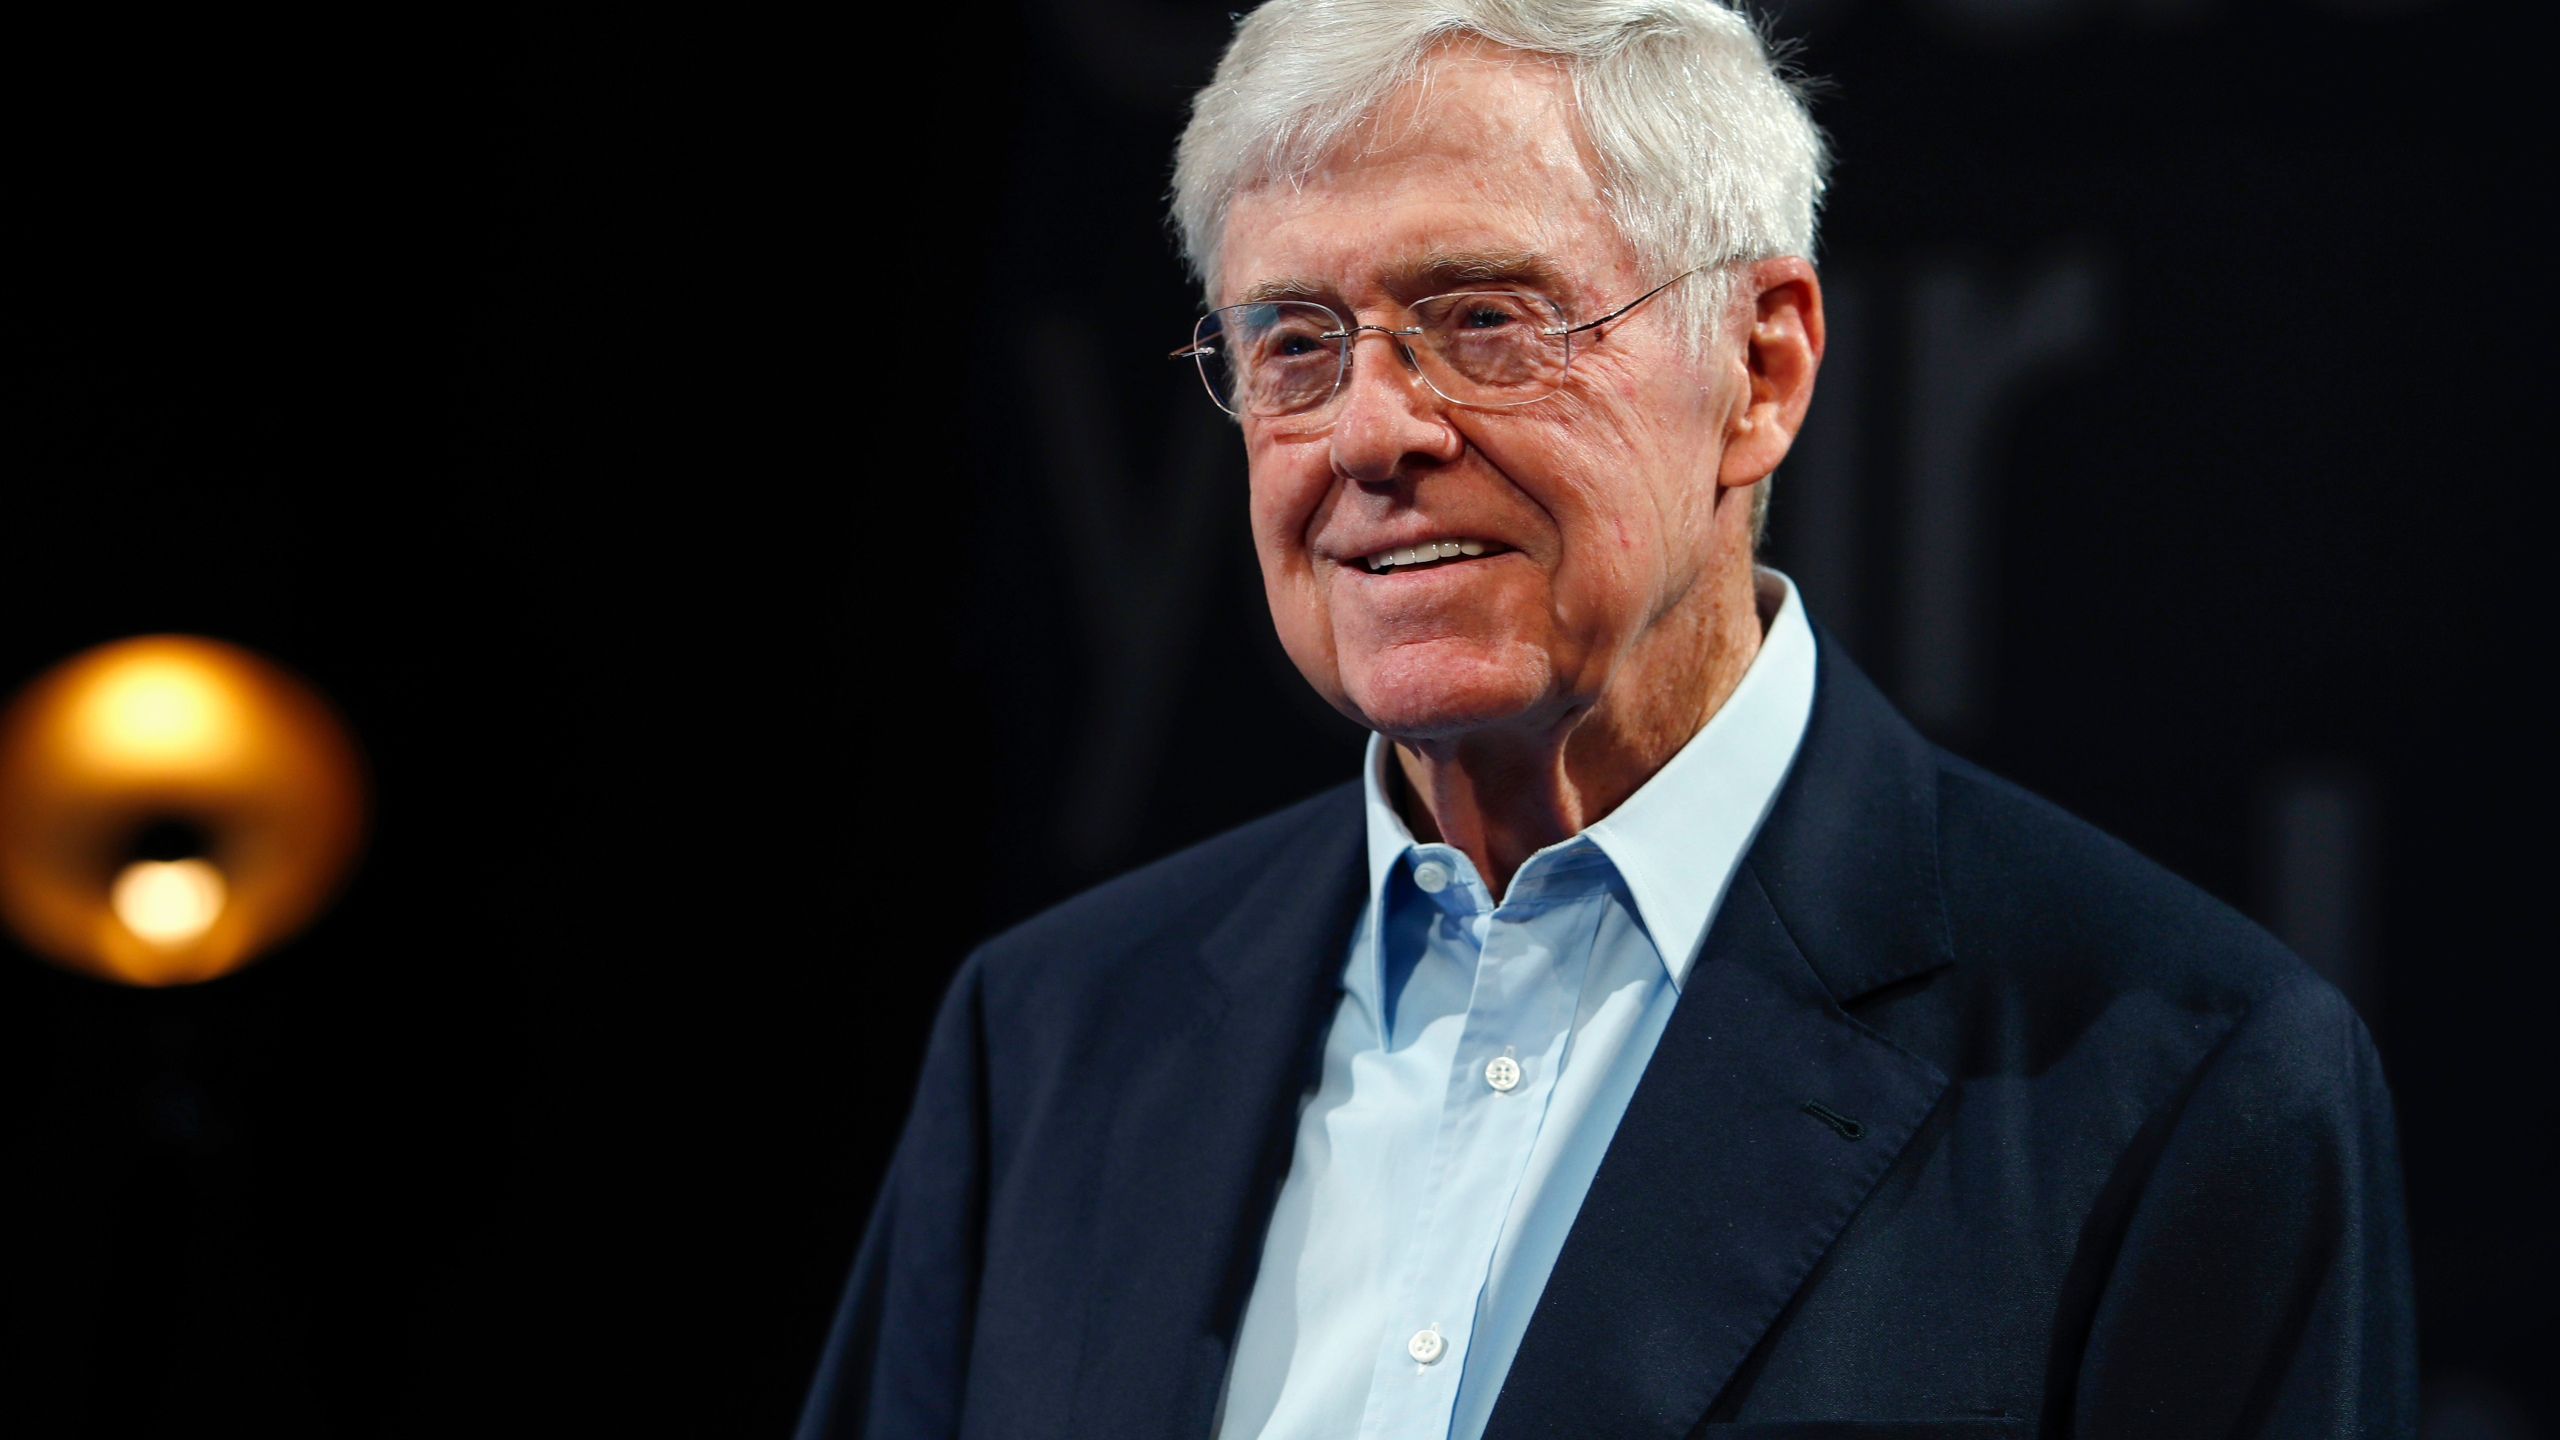 In this June 29, 2019, file photo, Charles Koch, chief executive officer of Koch Industries, at The Broadmoor Resort in Colorado Springs, Colo. The Supreme Court has ordered California to stop collecting the names and addresses of top donors to charities. The justices voted 6-3 along ideological lines to side with two nonprofit groups, including one with links to billionaire Charles Koch, that argued California's policy violates the First Amendment. (AP Photo/David Zalubowski, File)